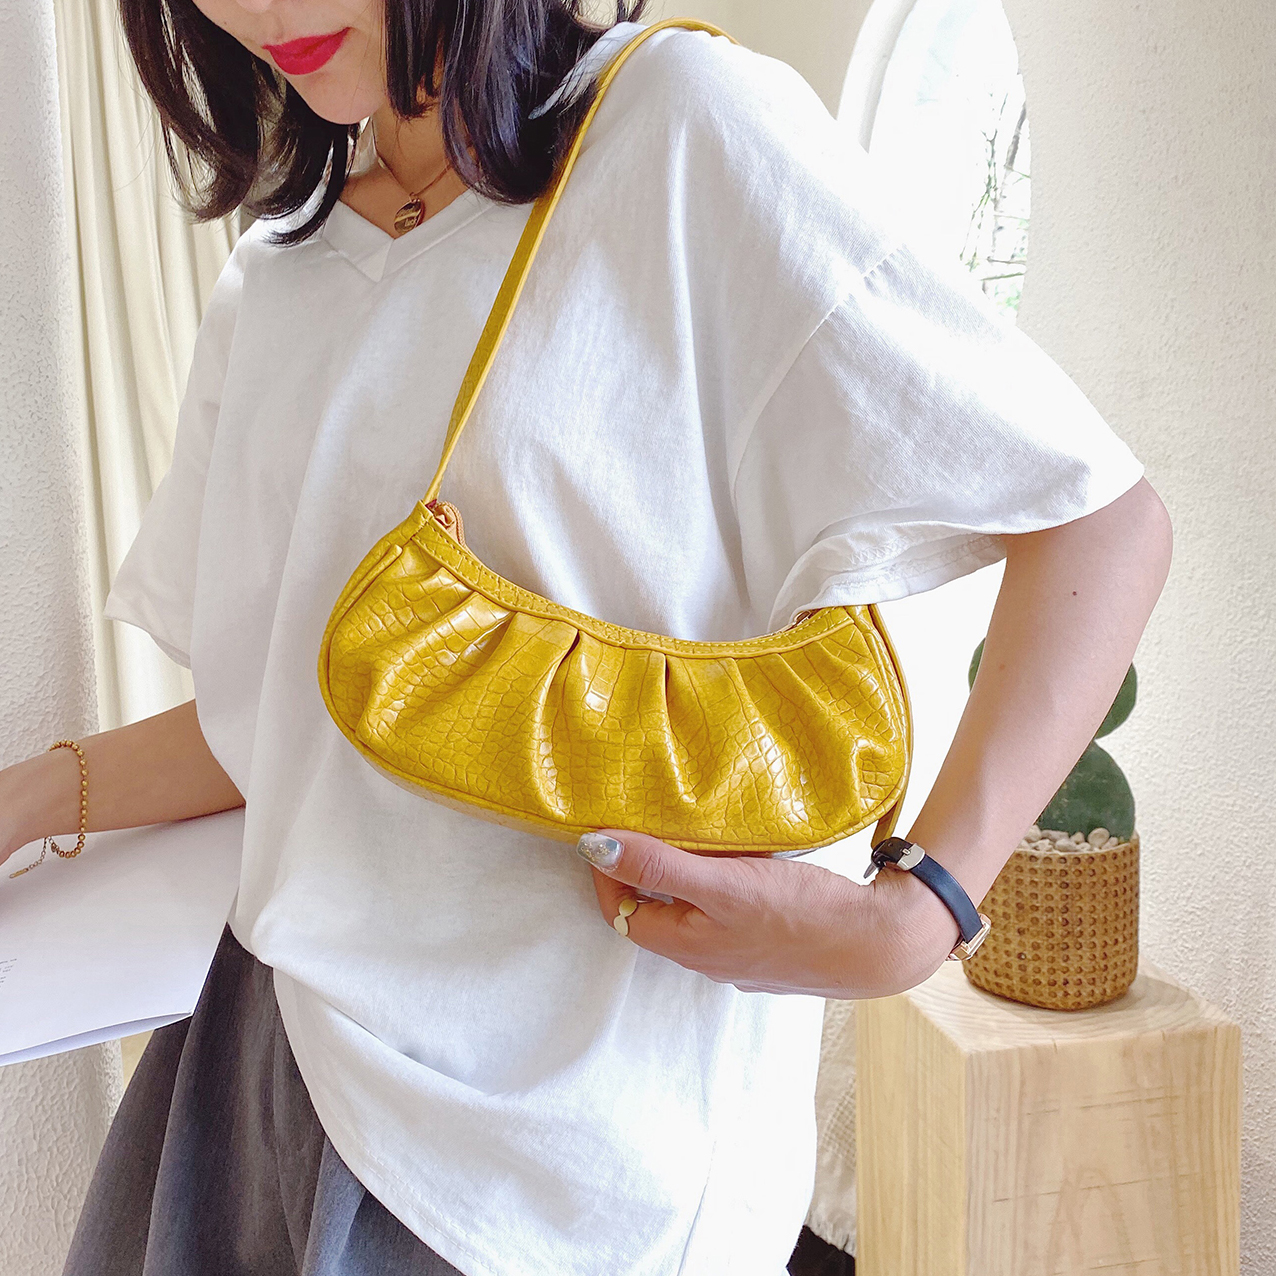 Folds Design Small PU Leather Shoulder Bags For Women 2020 Summer Handbags Female Travel Solid Color Fashion Hand Bag